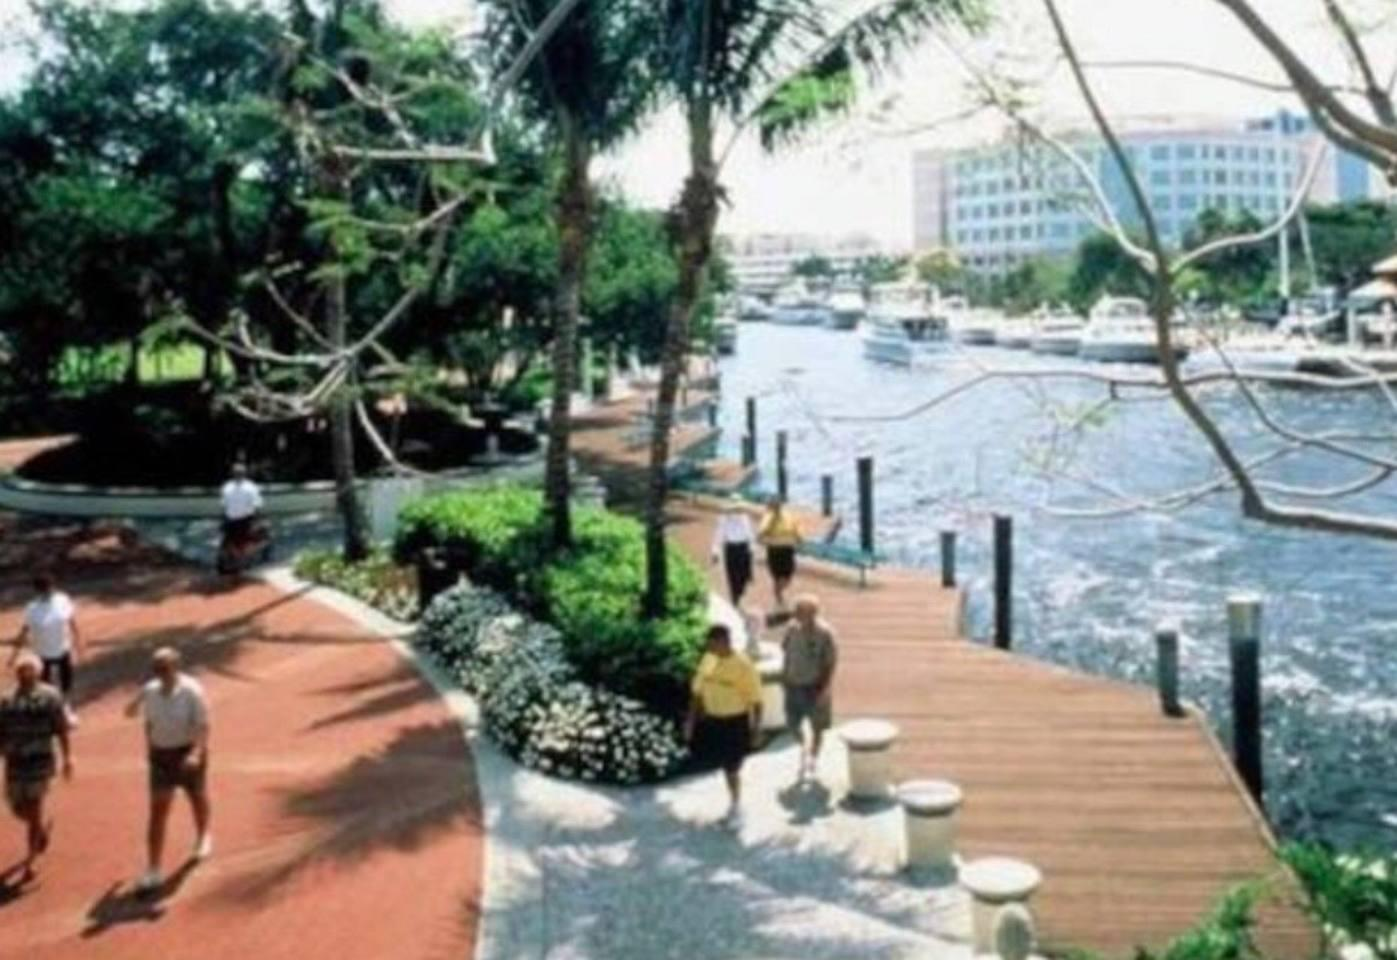 Apartment 4 Bedroom house steps from Riverwalk FtLauderdale photo 31771365